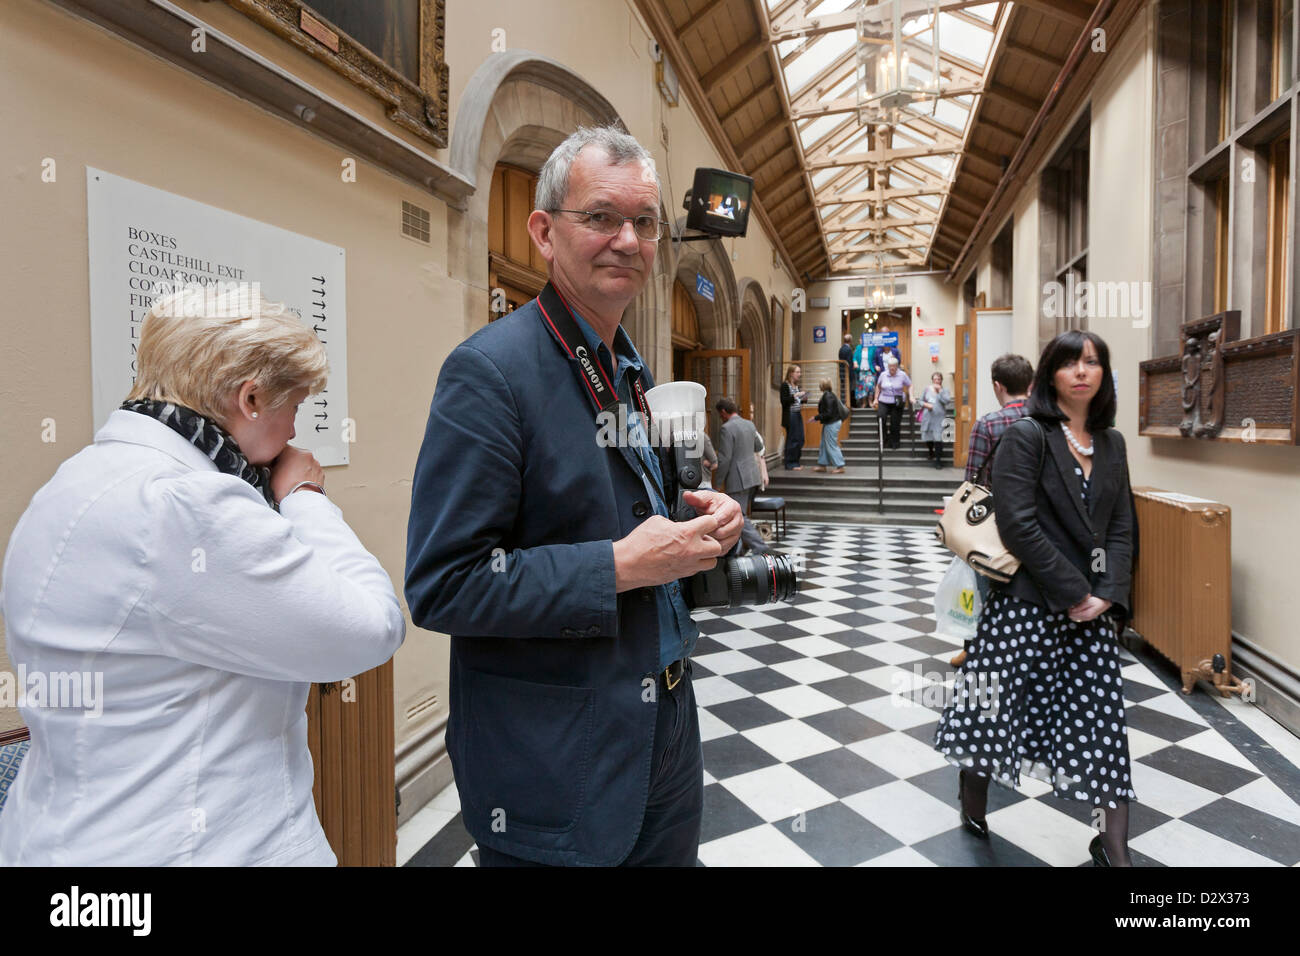 British photographer Martin Parr working at The General Assembly of the Church of Scotland 2011 - Stock Image